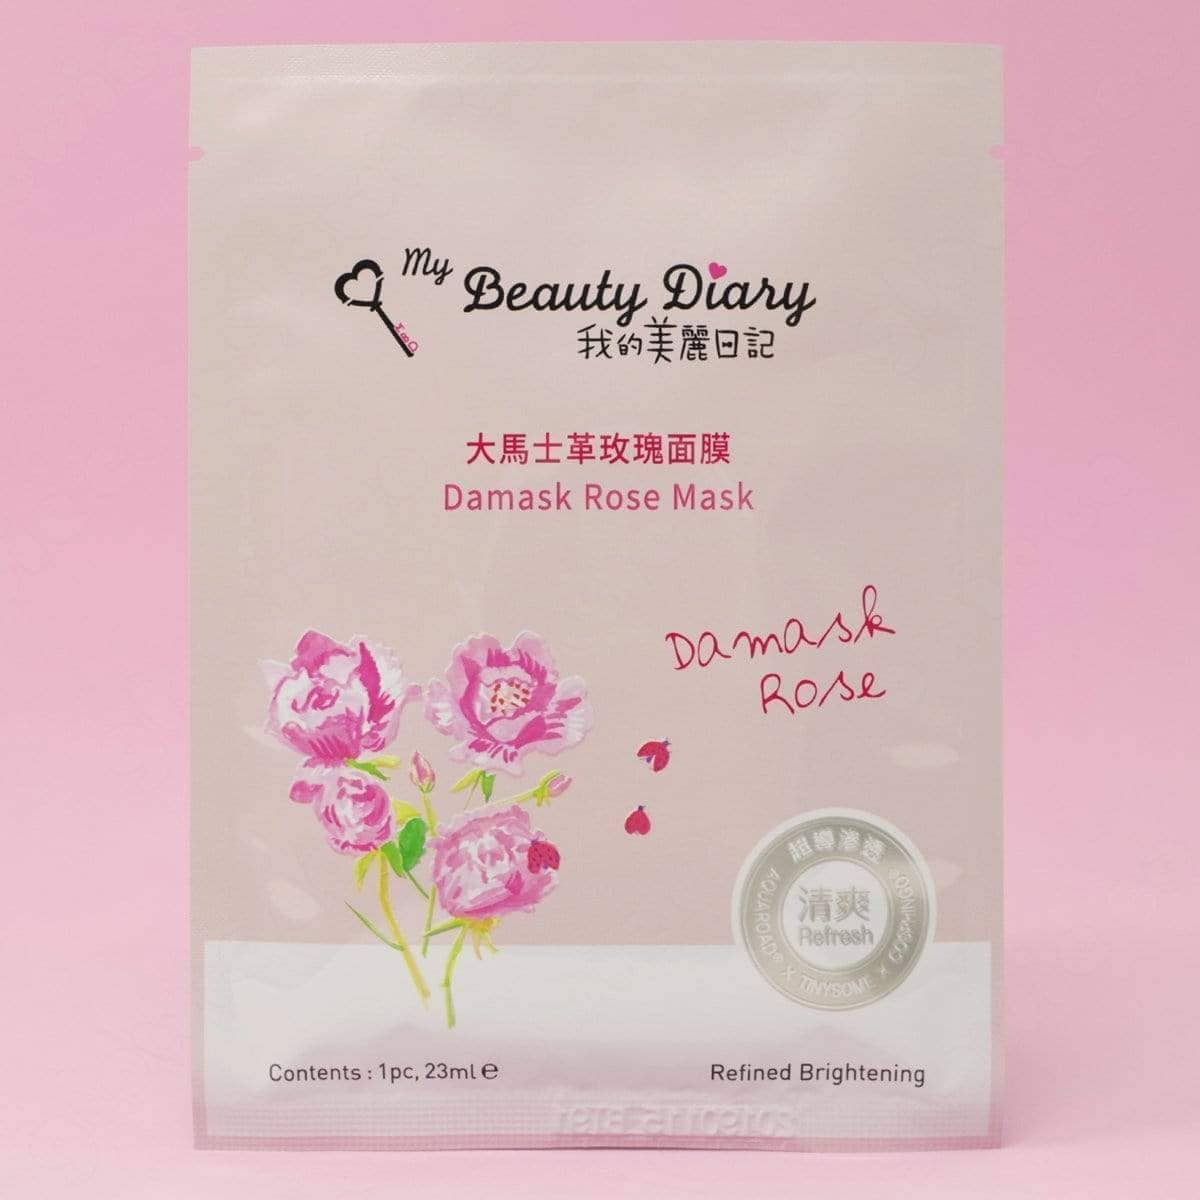 My Beauty Diary Damask Rose Sheet Mask